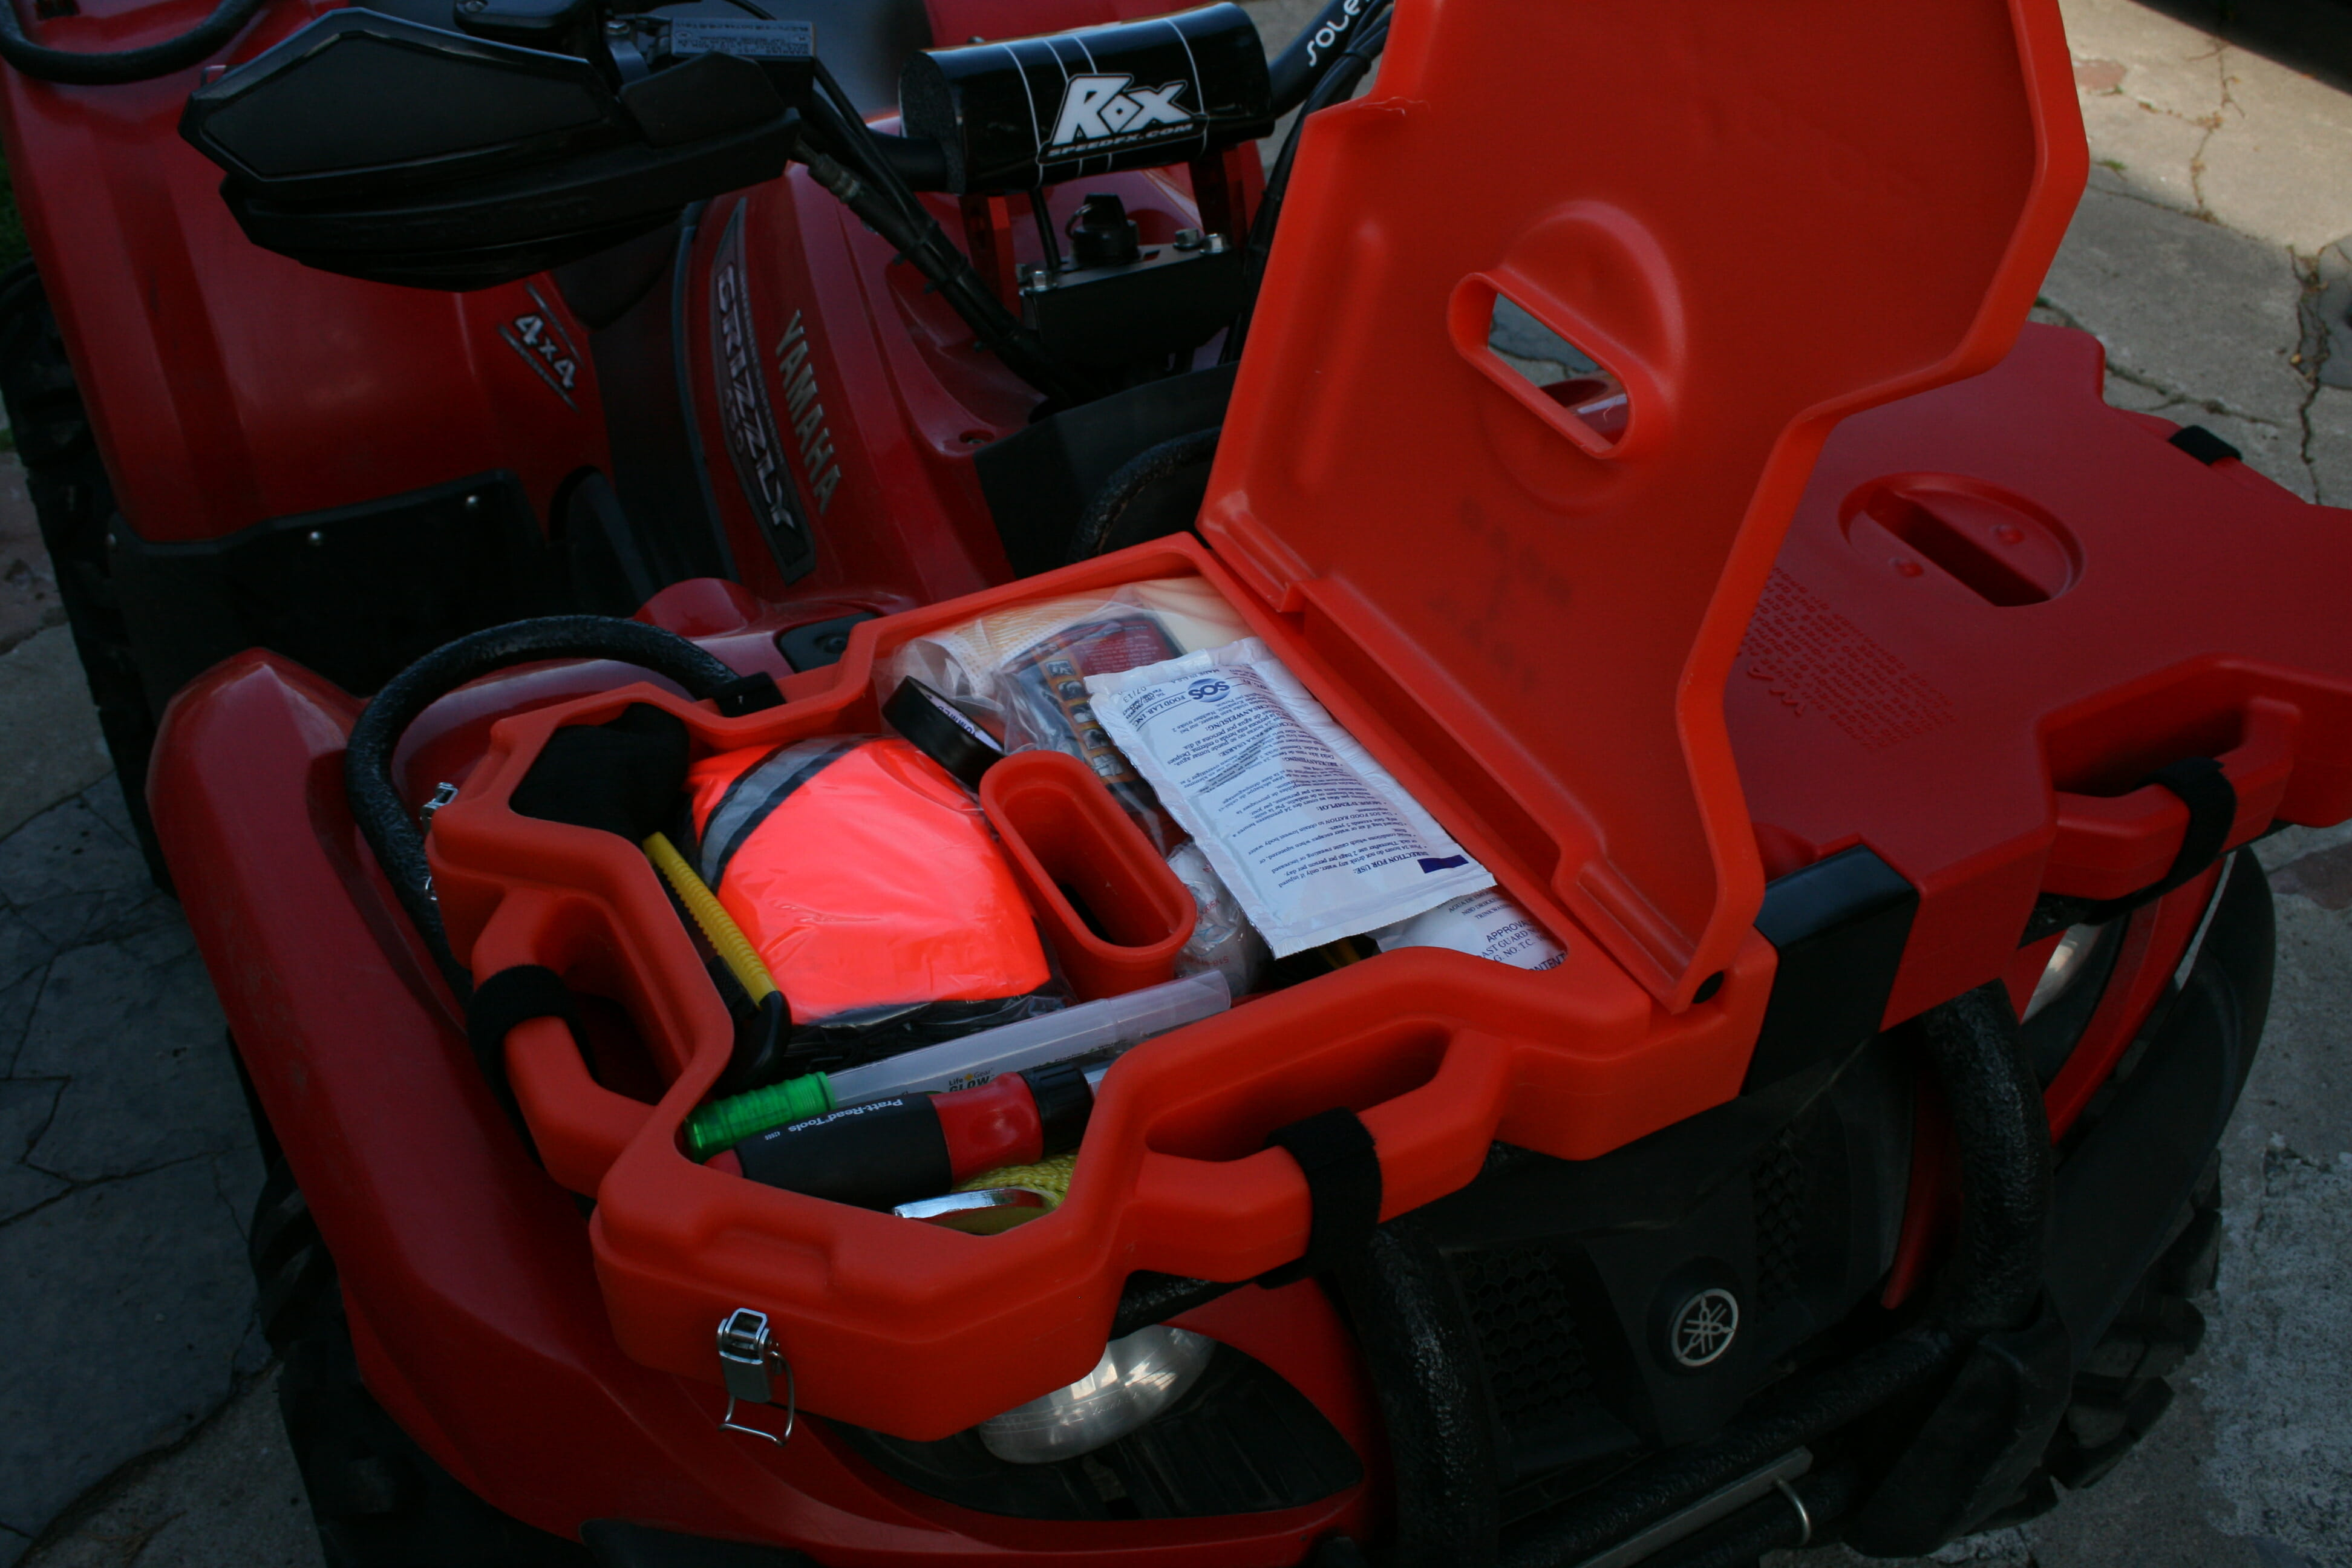 ATV Emergency kit